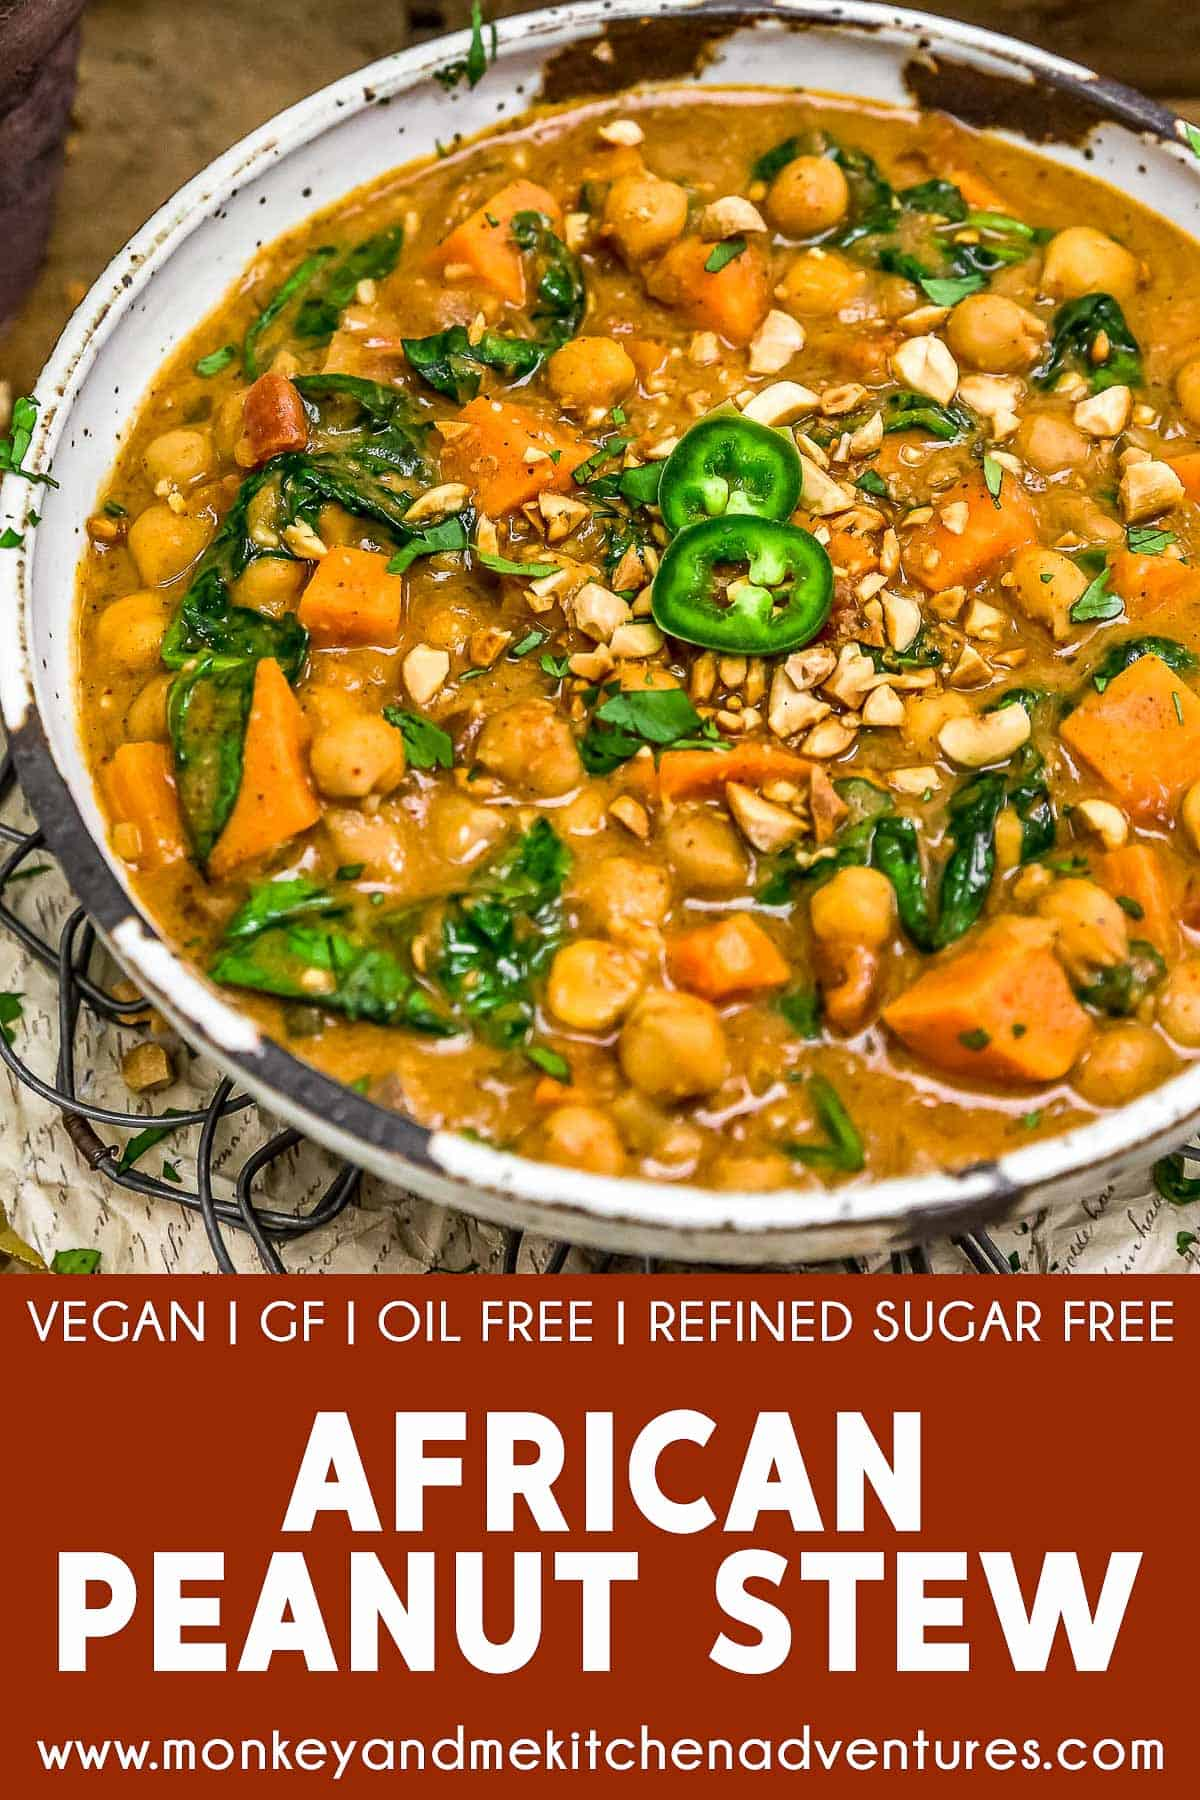 African Peanut Stew with text description